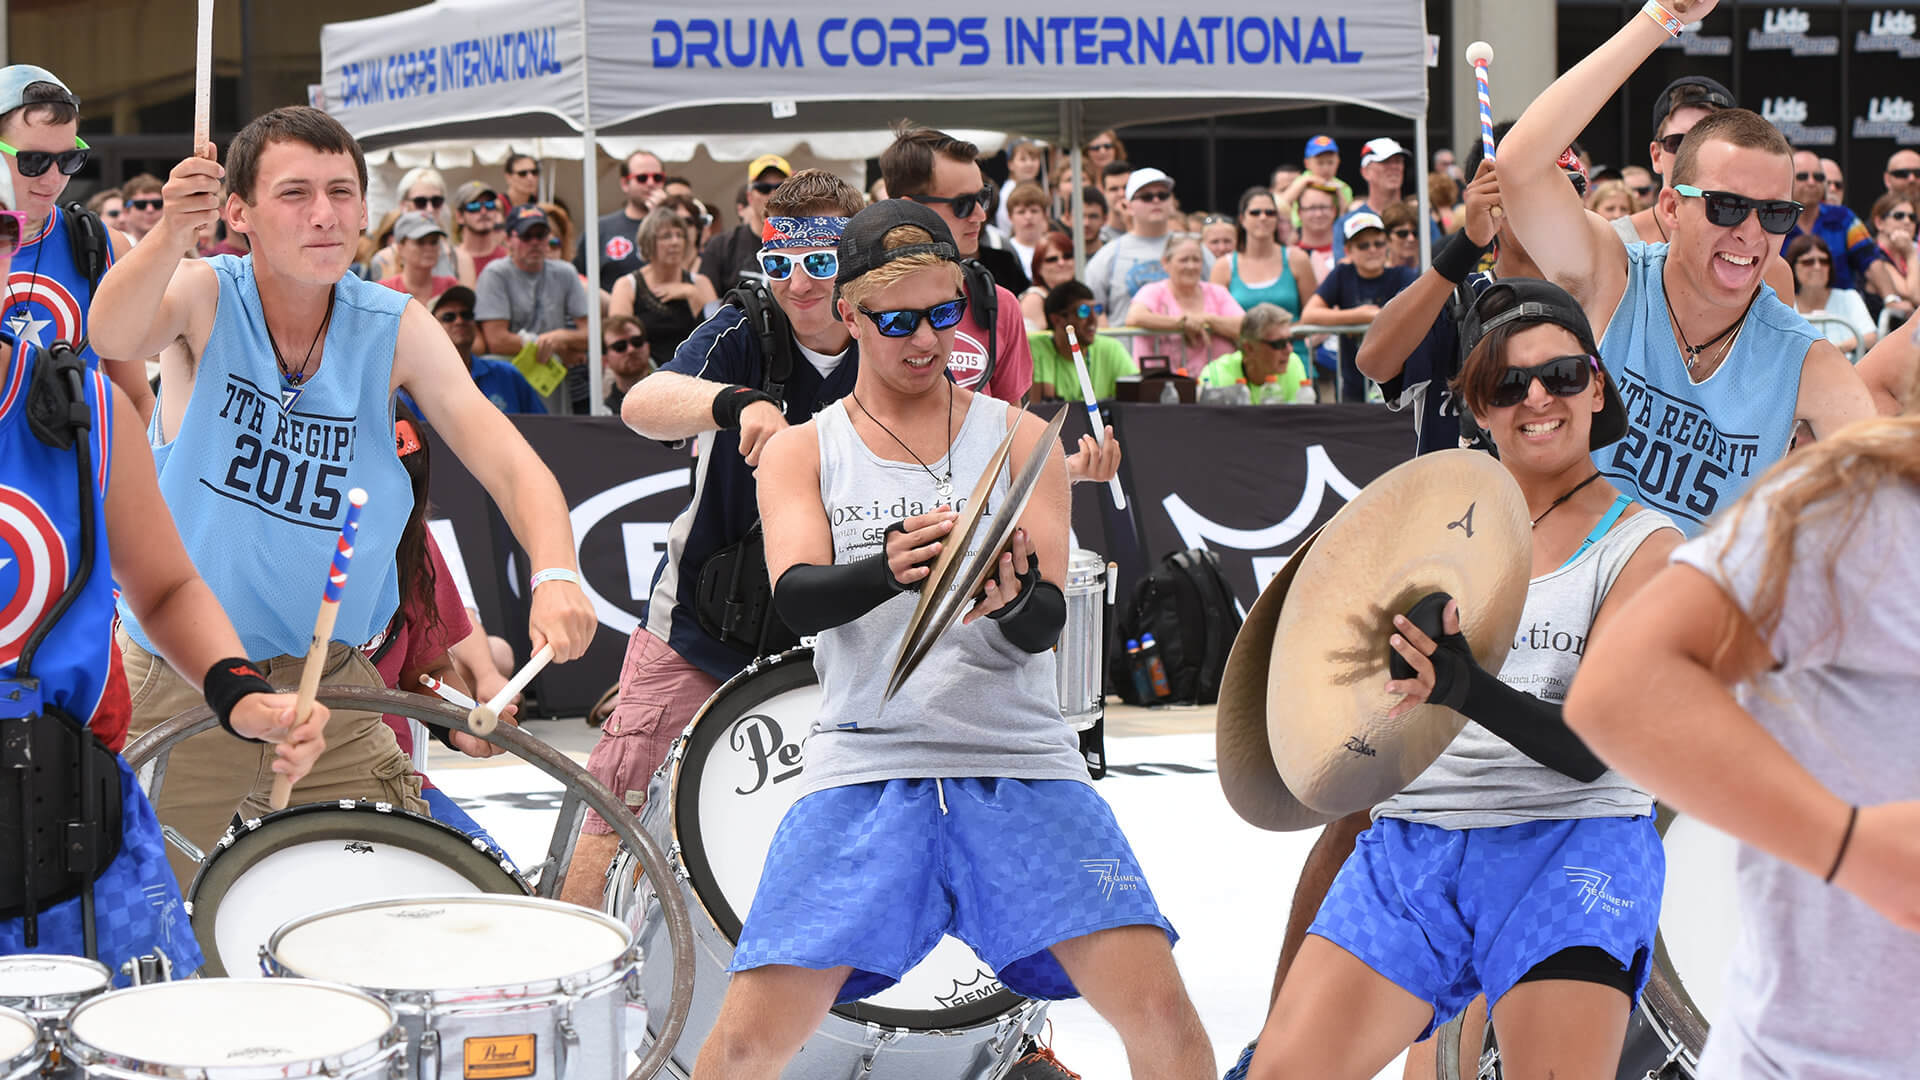 DrumLine Battle enthralls audiences, performers in Indy